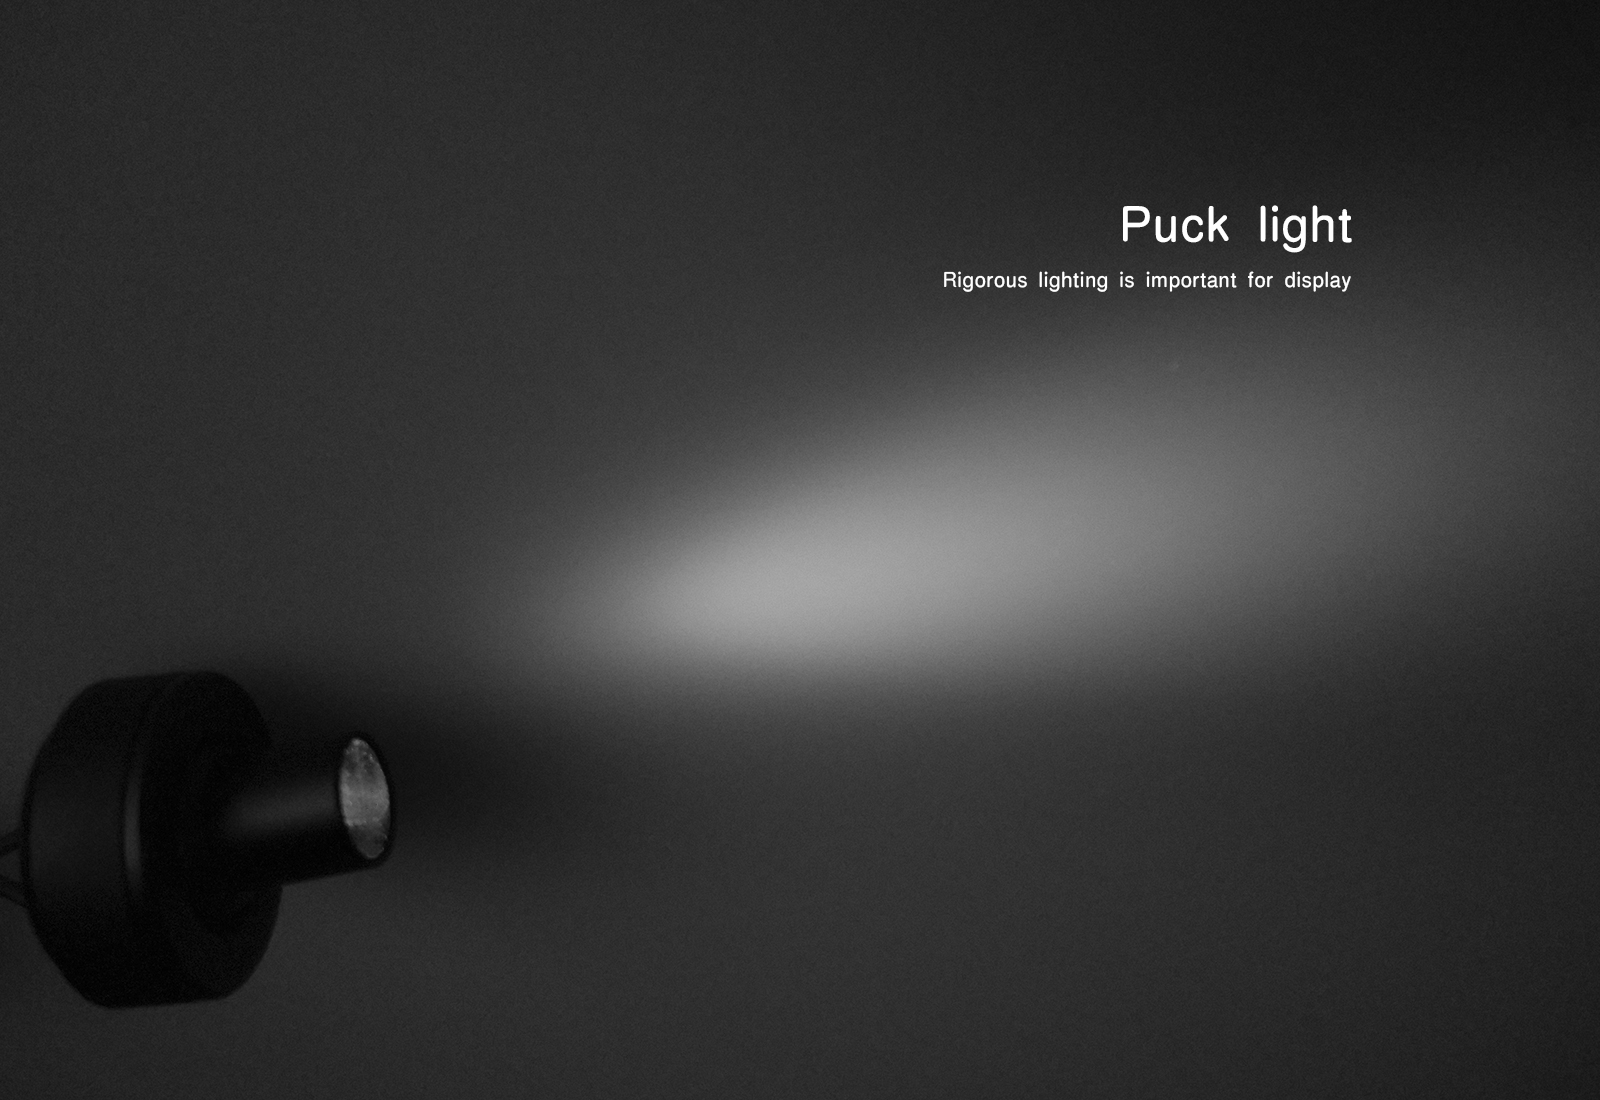 Embedded puck light